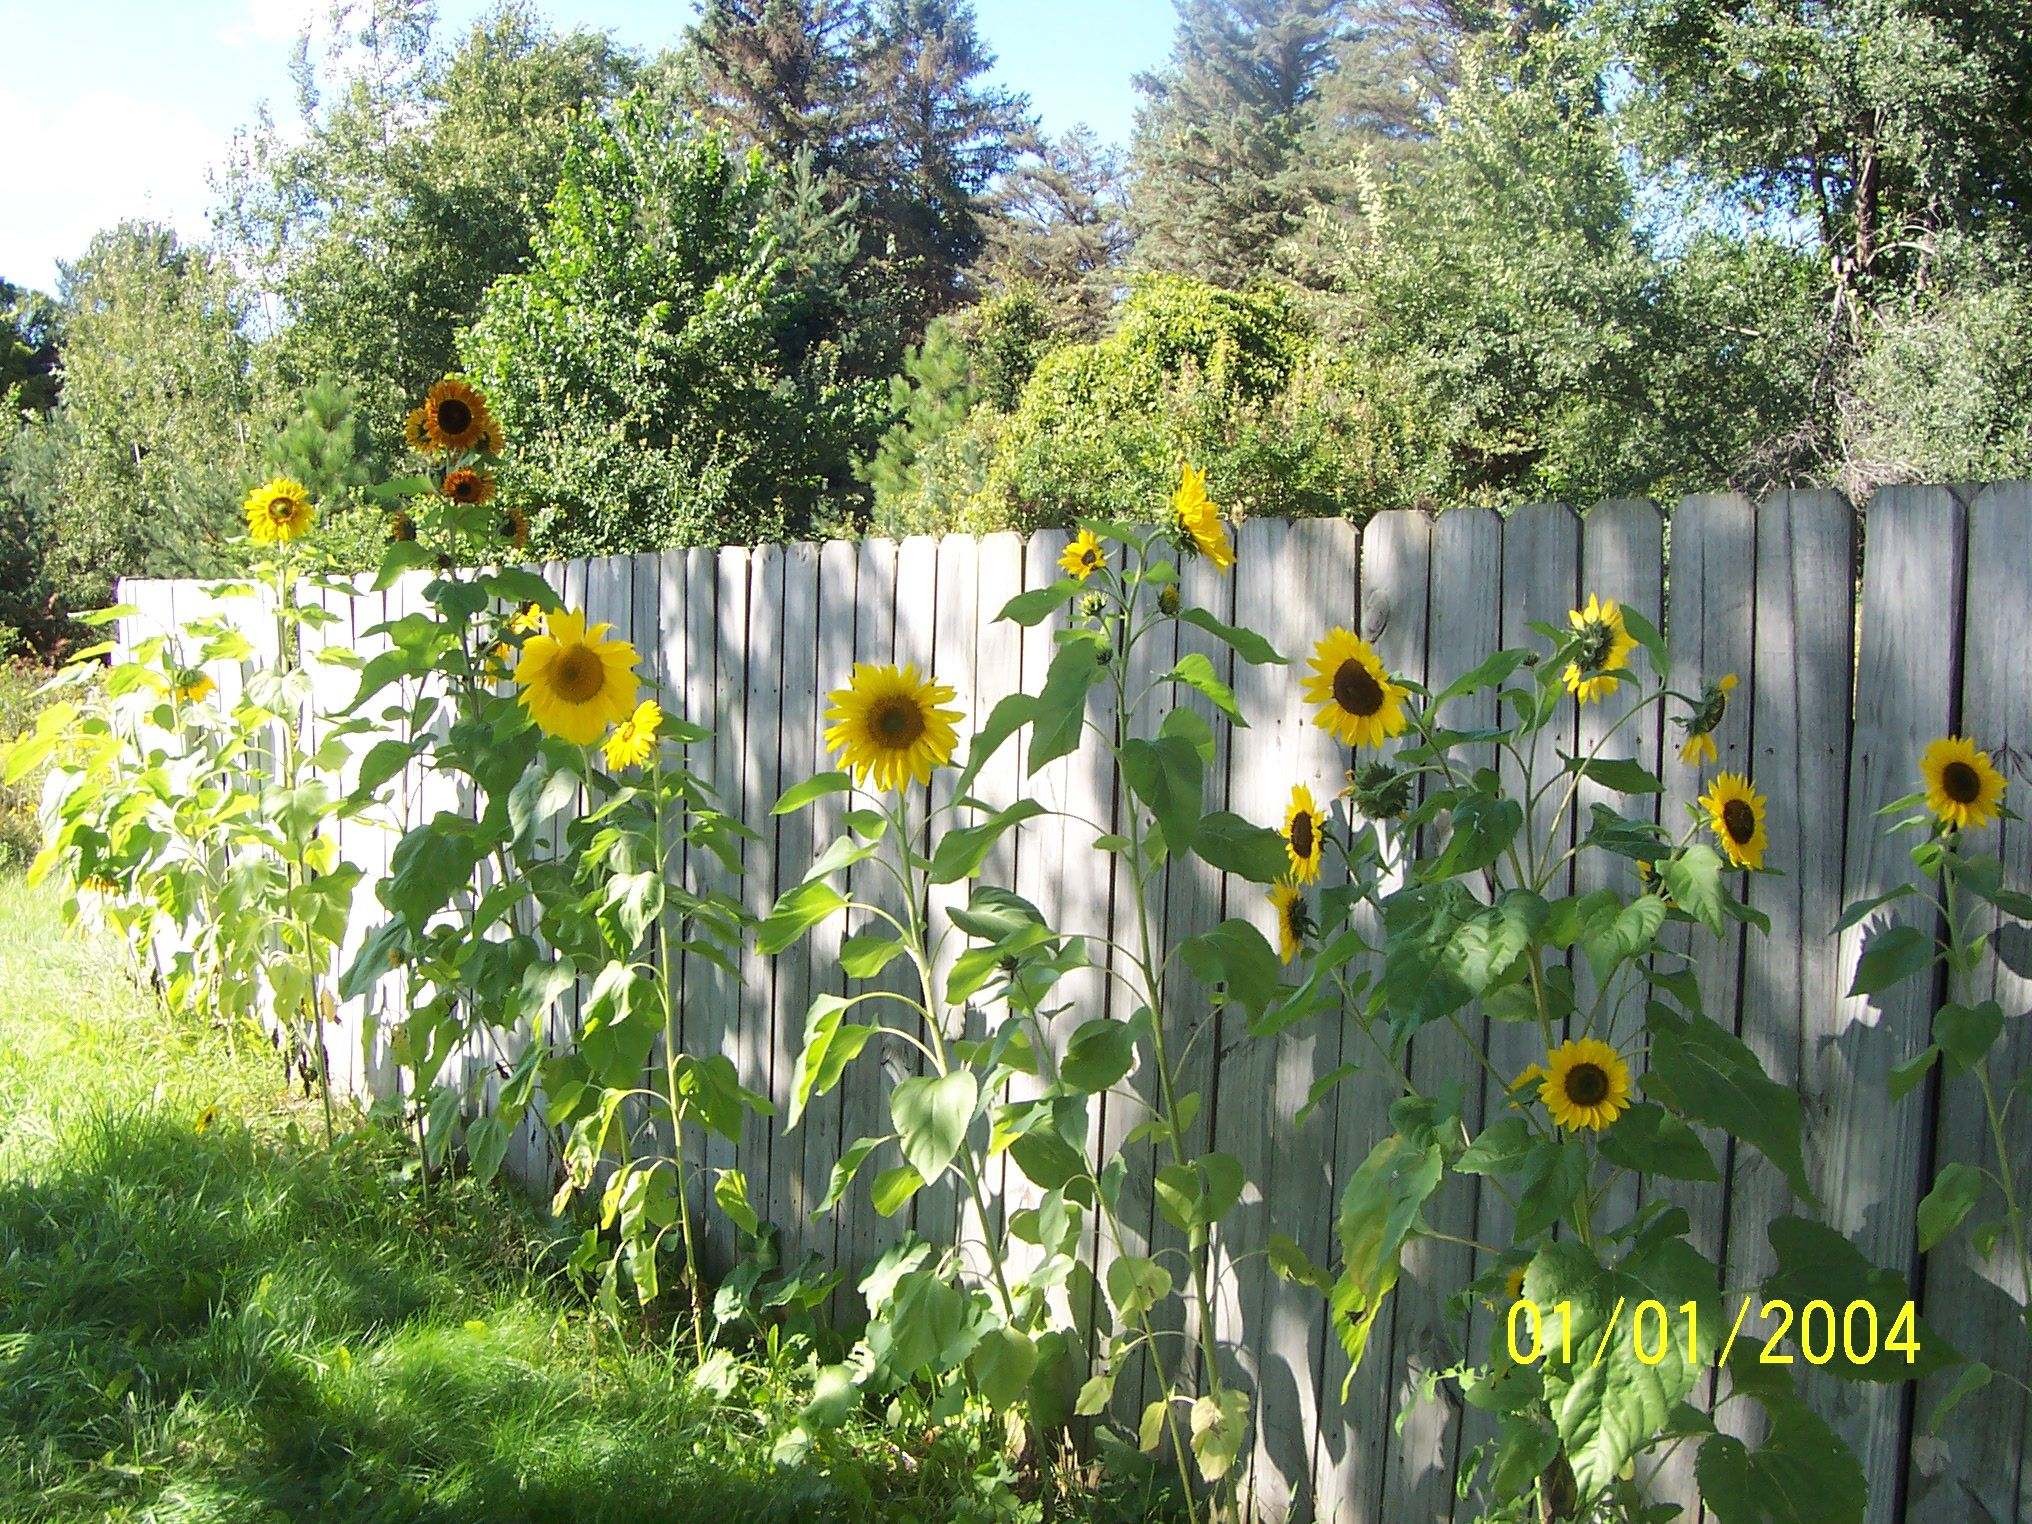 10 Sunflower Garden Ideas, Most of the Awesome as well as Attractive is part of Sunflower garden, Garden, Garden design, Sunflower pictures, Sunflower, Corner garden - Do you Have some areas of the garden in your house  Well, garden may be great spot to gather with your loved ones  It'll be alternative playroom for the